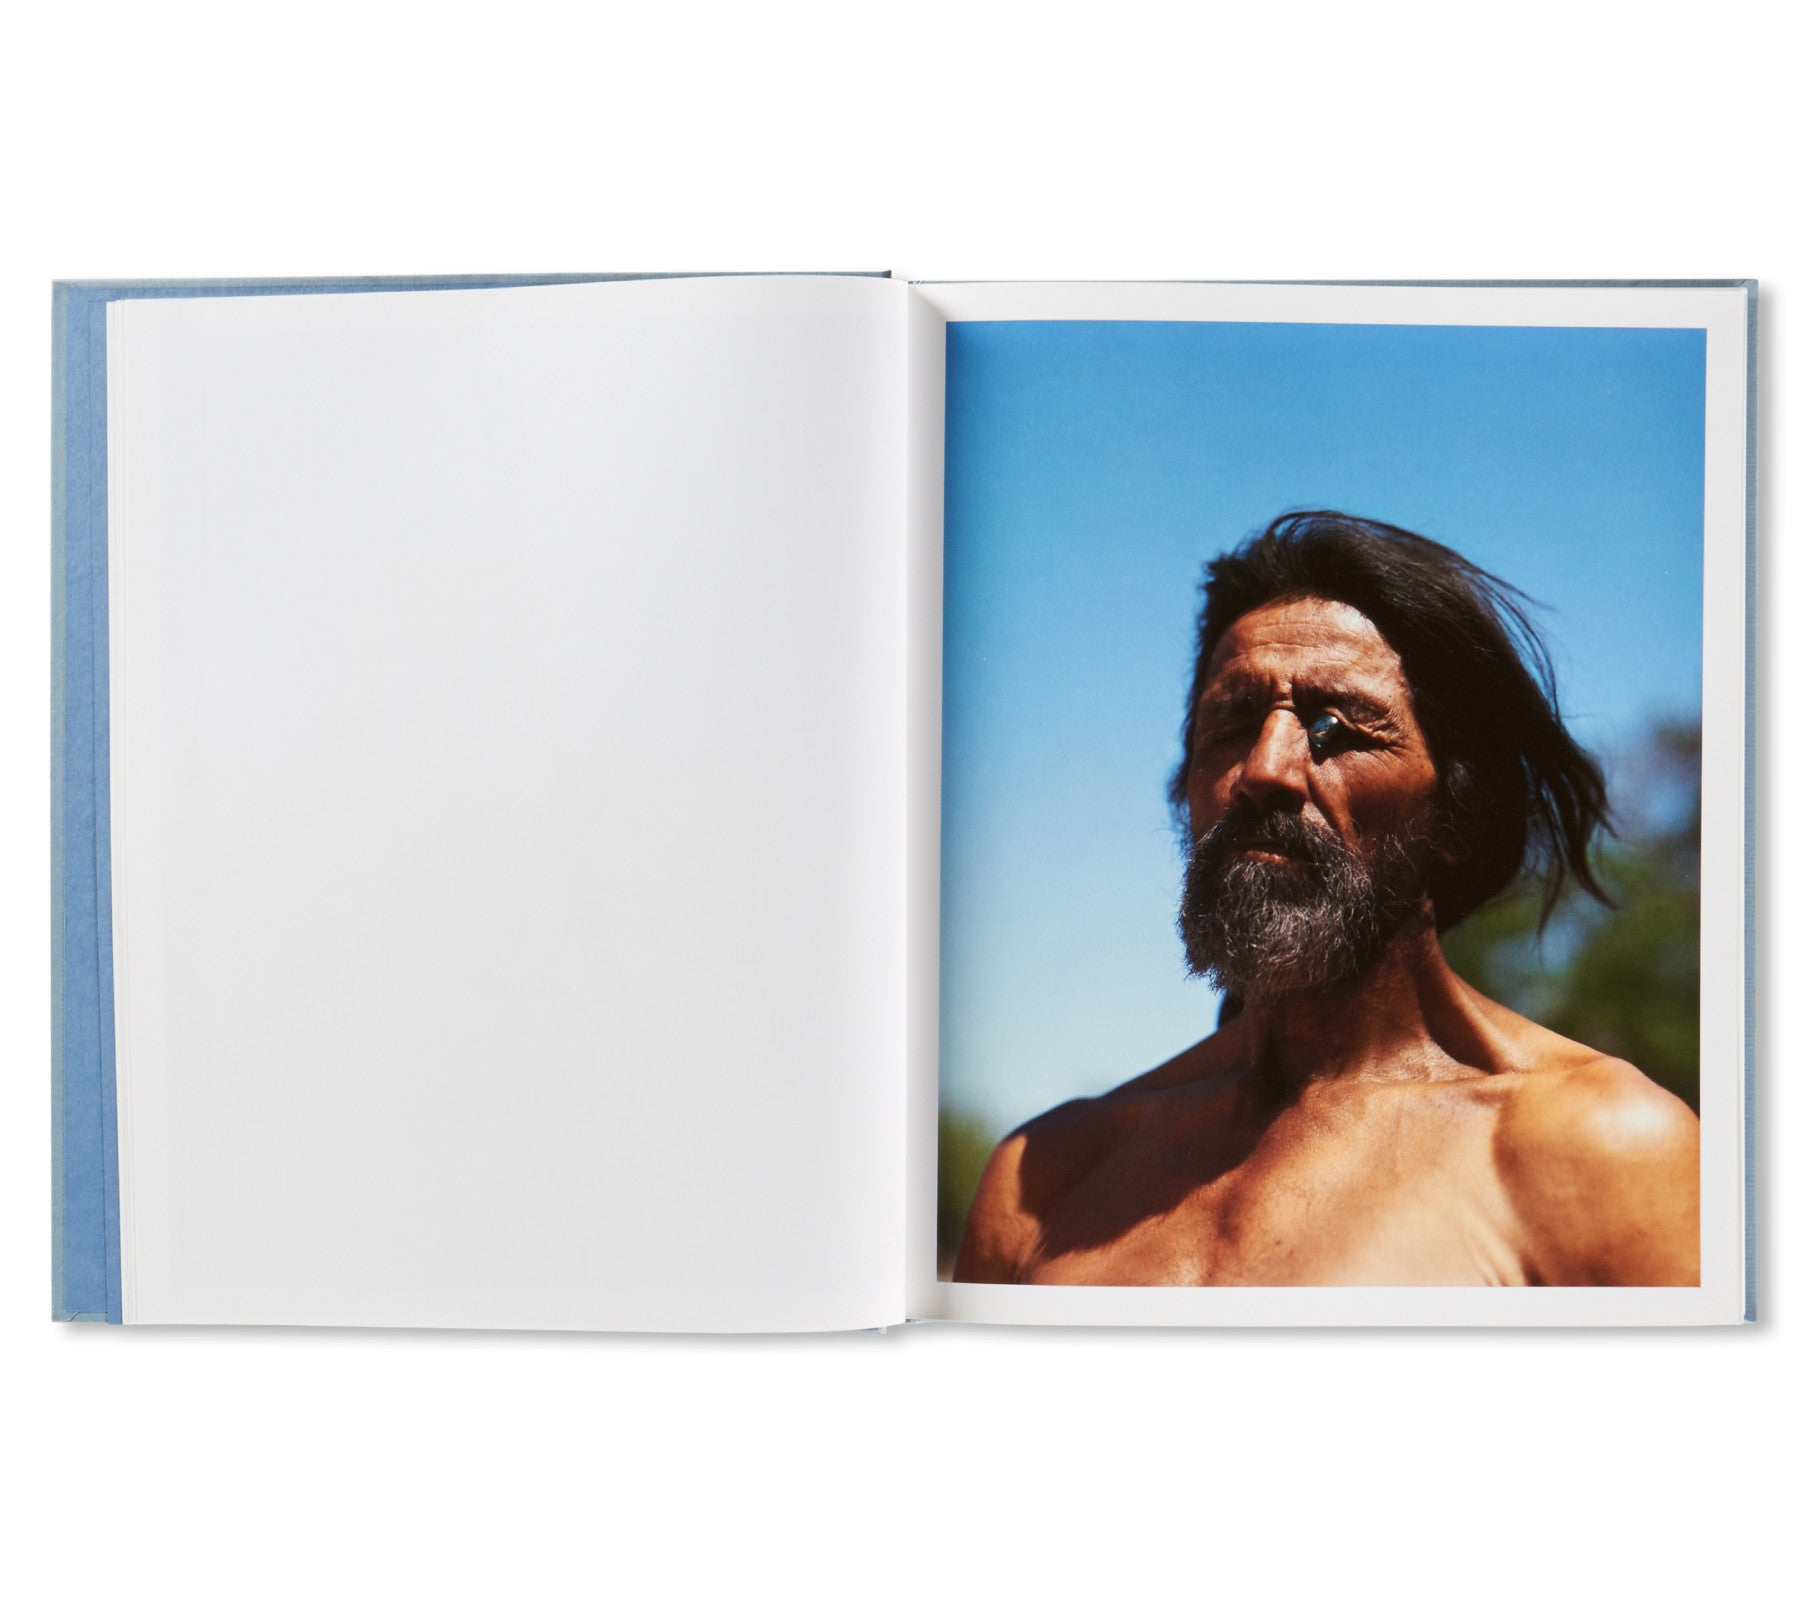 ZZYZX by Gregory Halpern [FIRST EDITION, FIRST PRINTING]